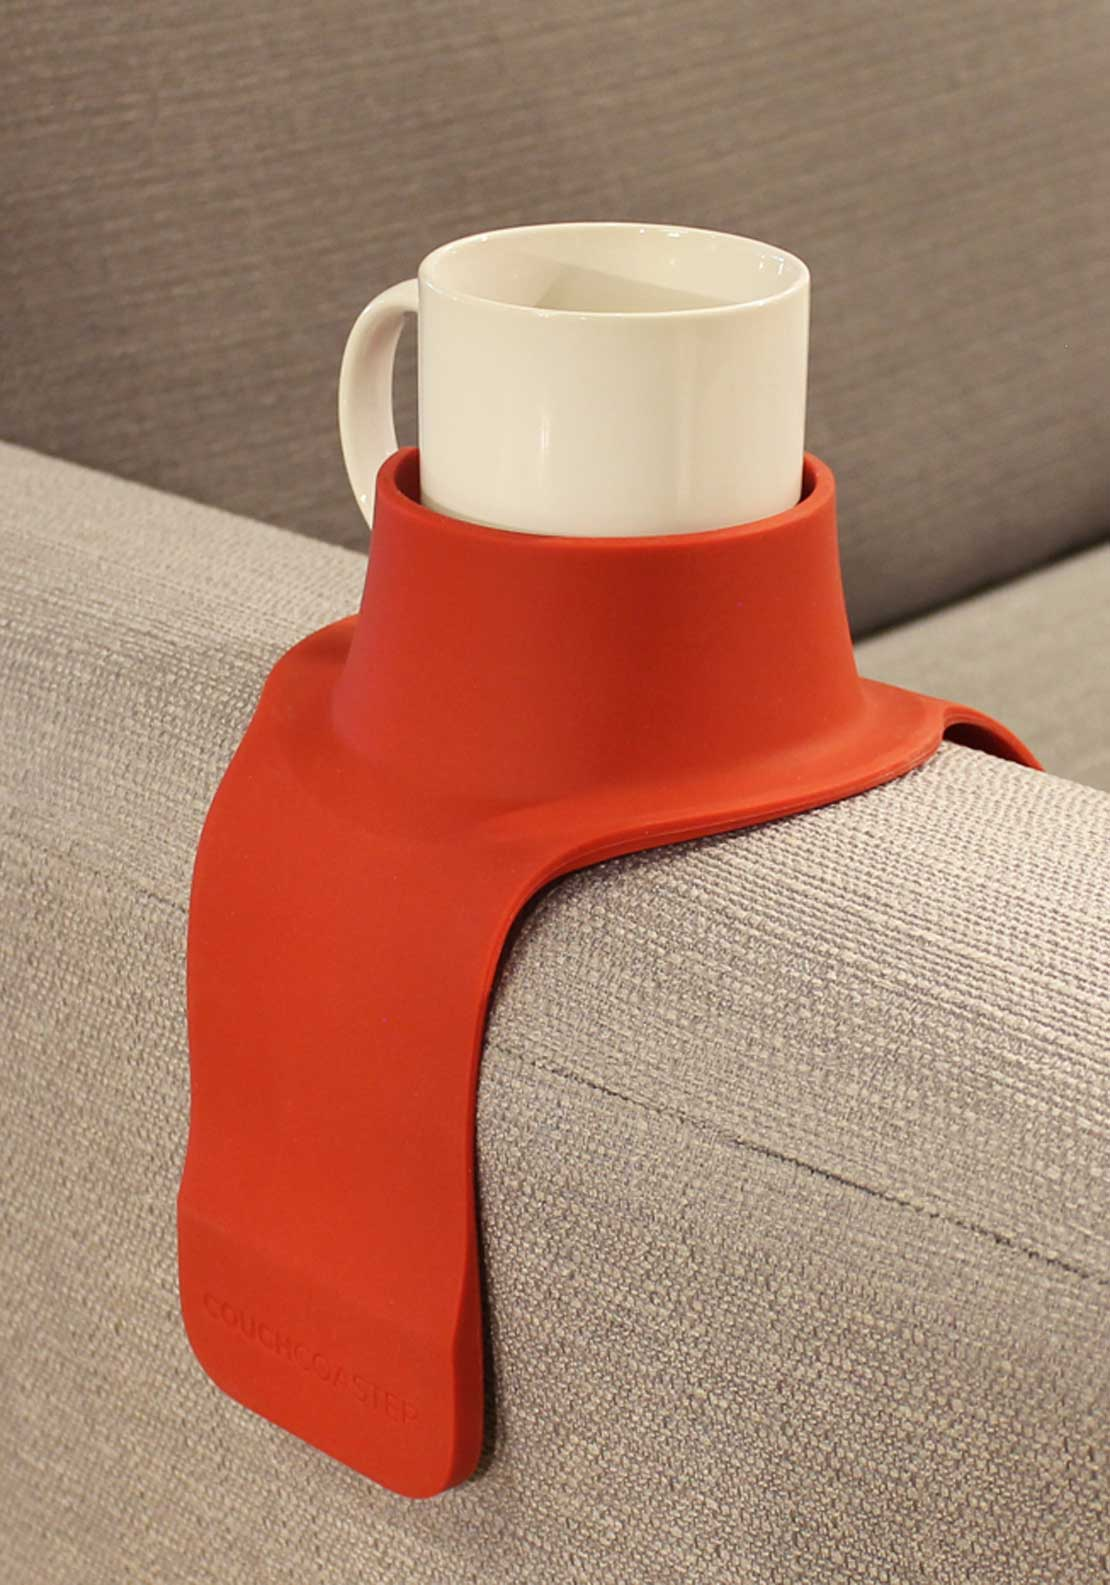 CouchCoaster Drink Holder, Rosso Red